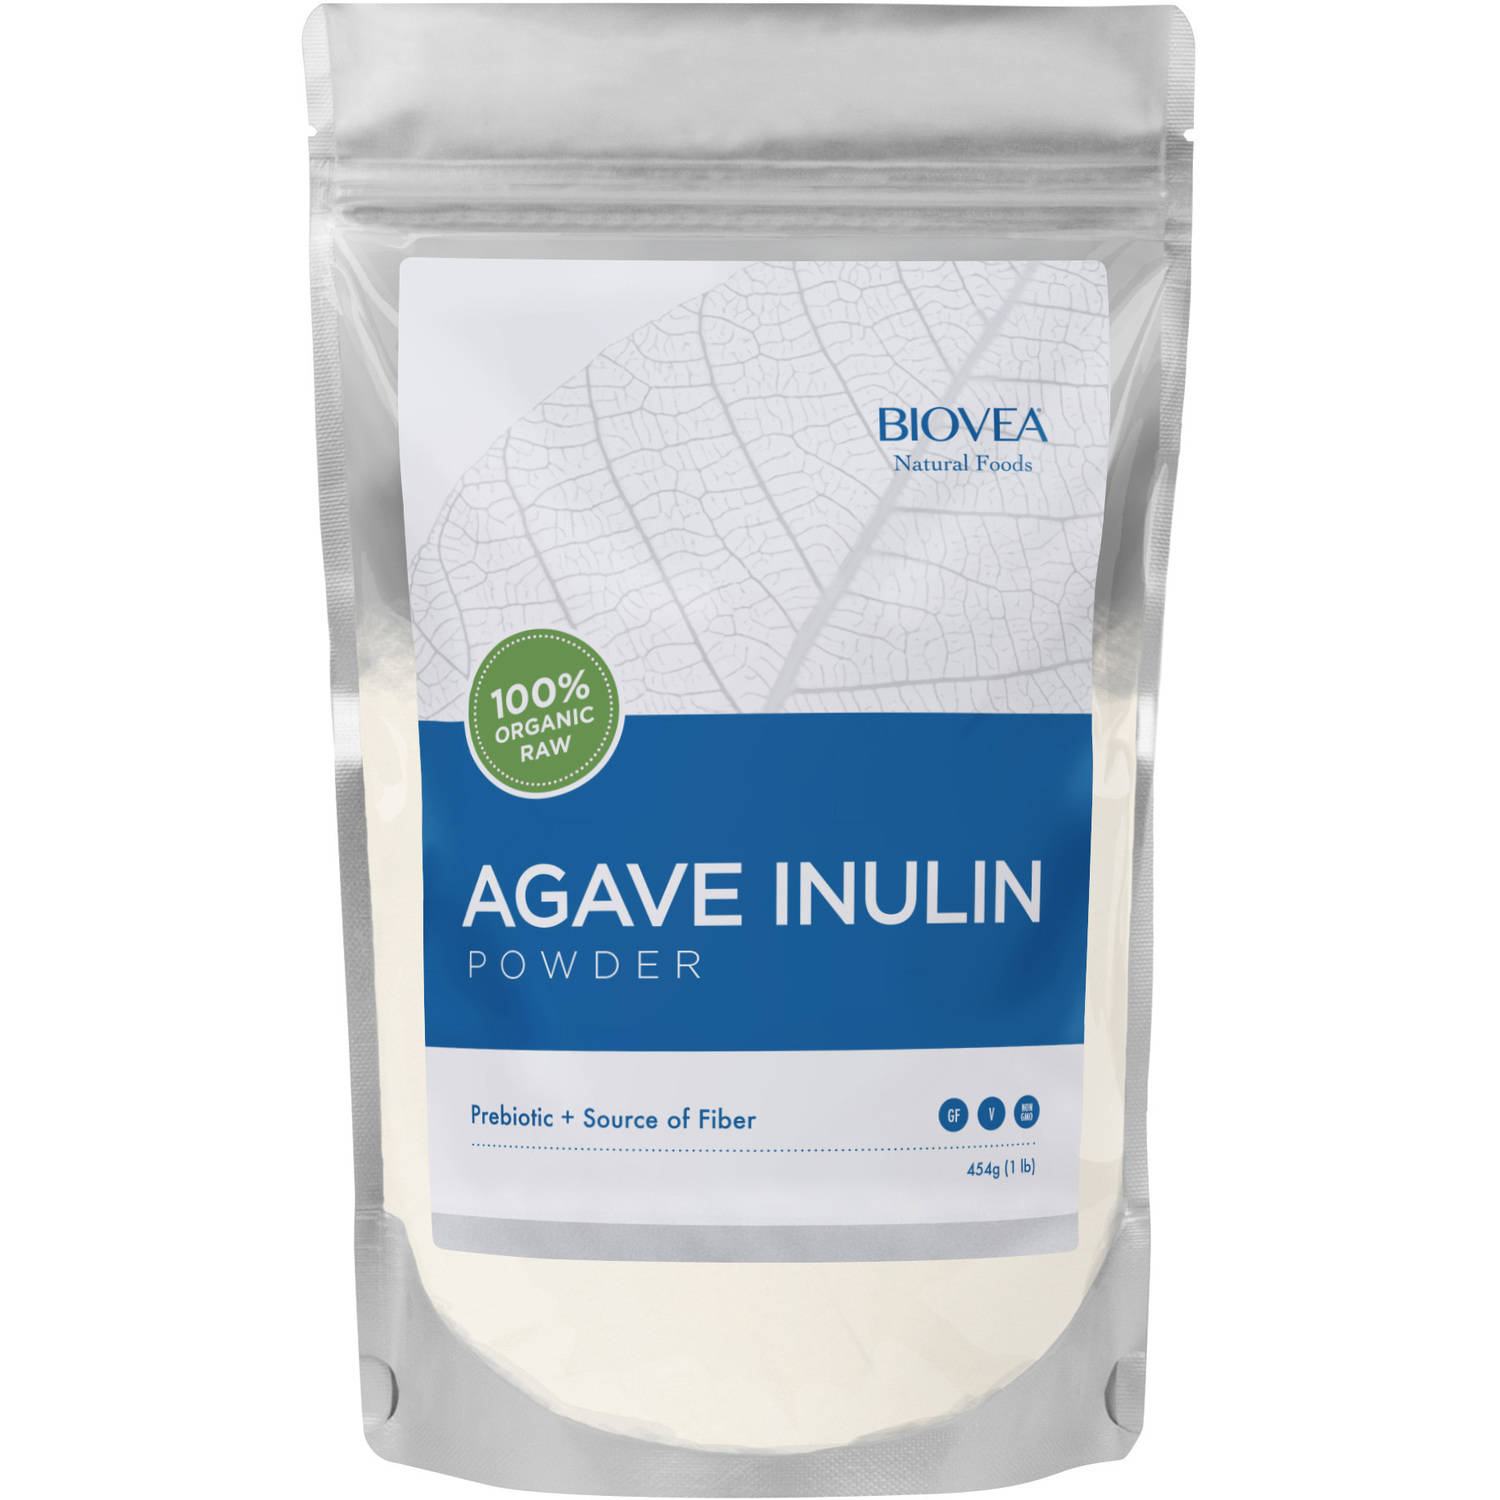 BIOVEA 100% Organic Raw Agave Inulin Powder, 16 oz